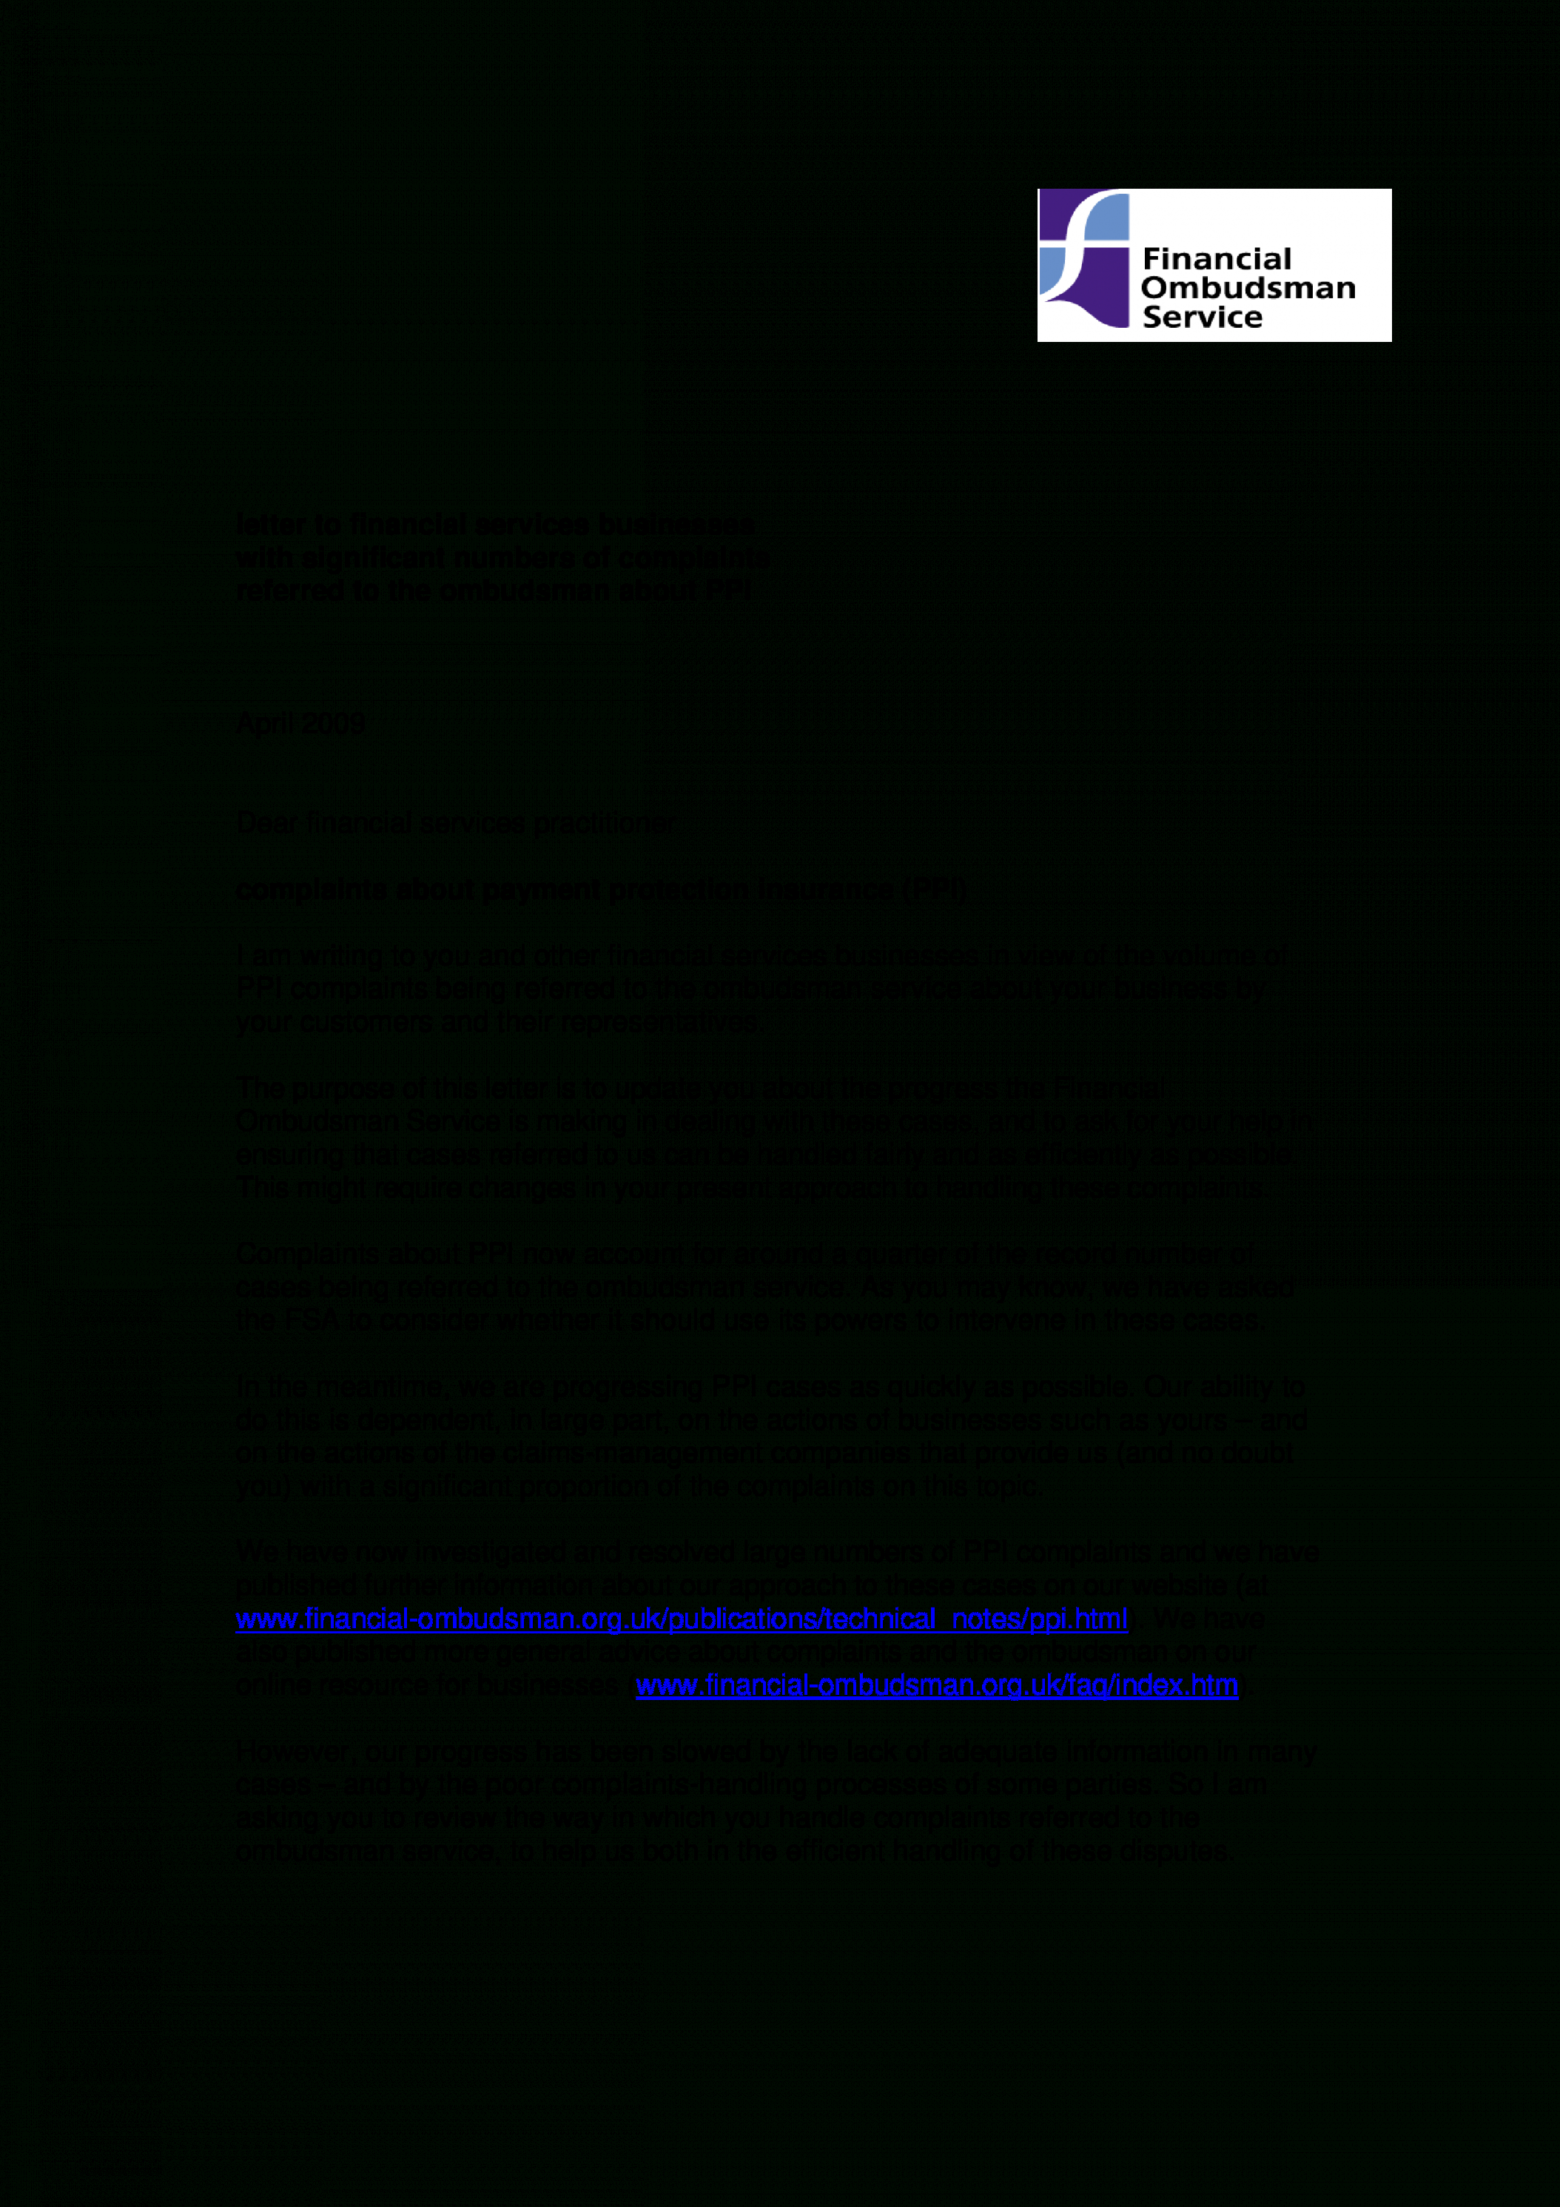 free free professional business complaint letter  templates at financial ombudsman complaint letter template